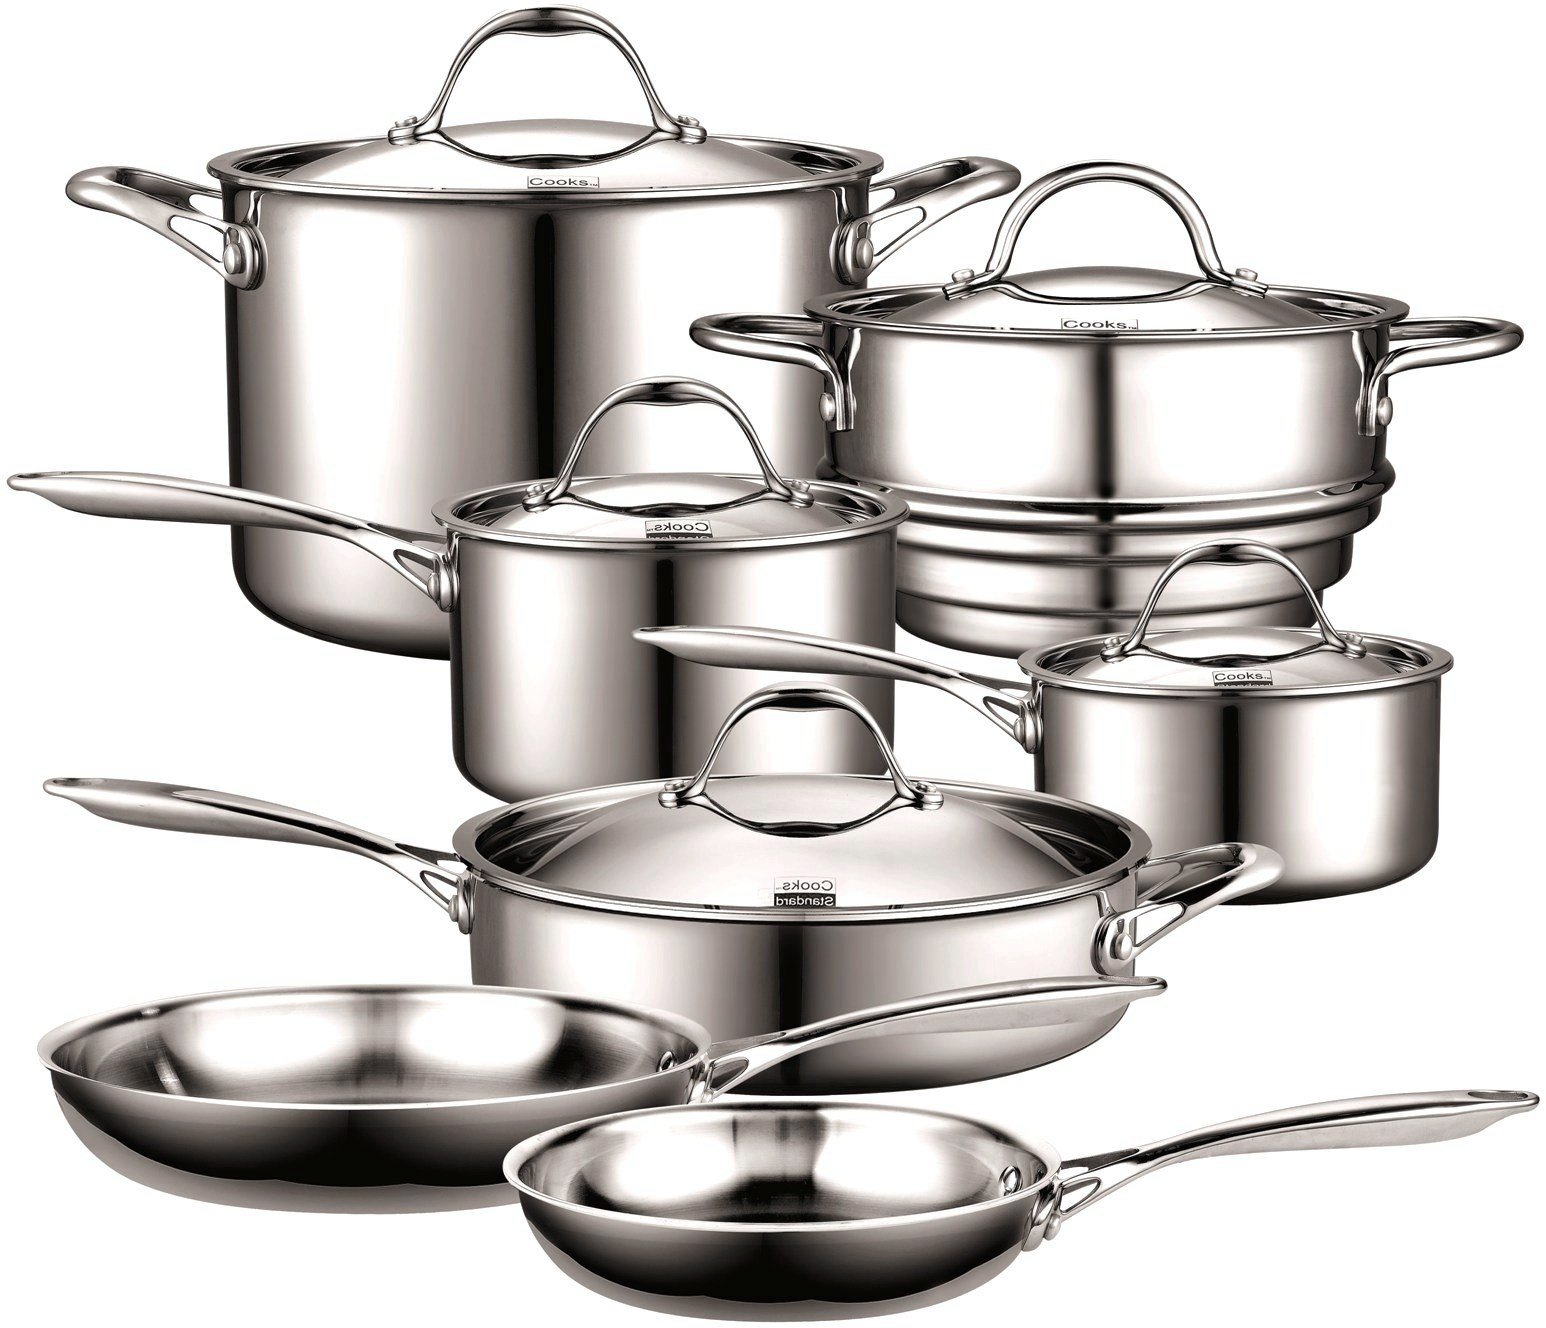 Cooks Standard 12-Piece Multi-Ply Clad Stainless Steel Cookware Set by Cooks Standard (Image #1)